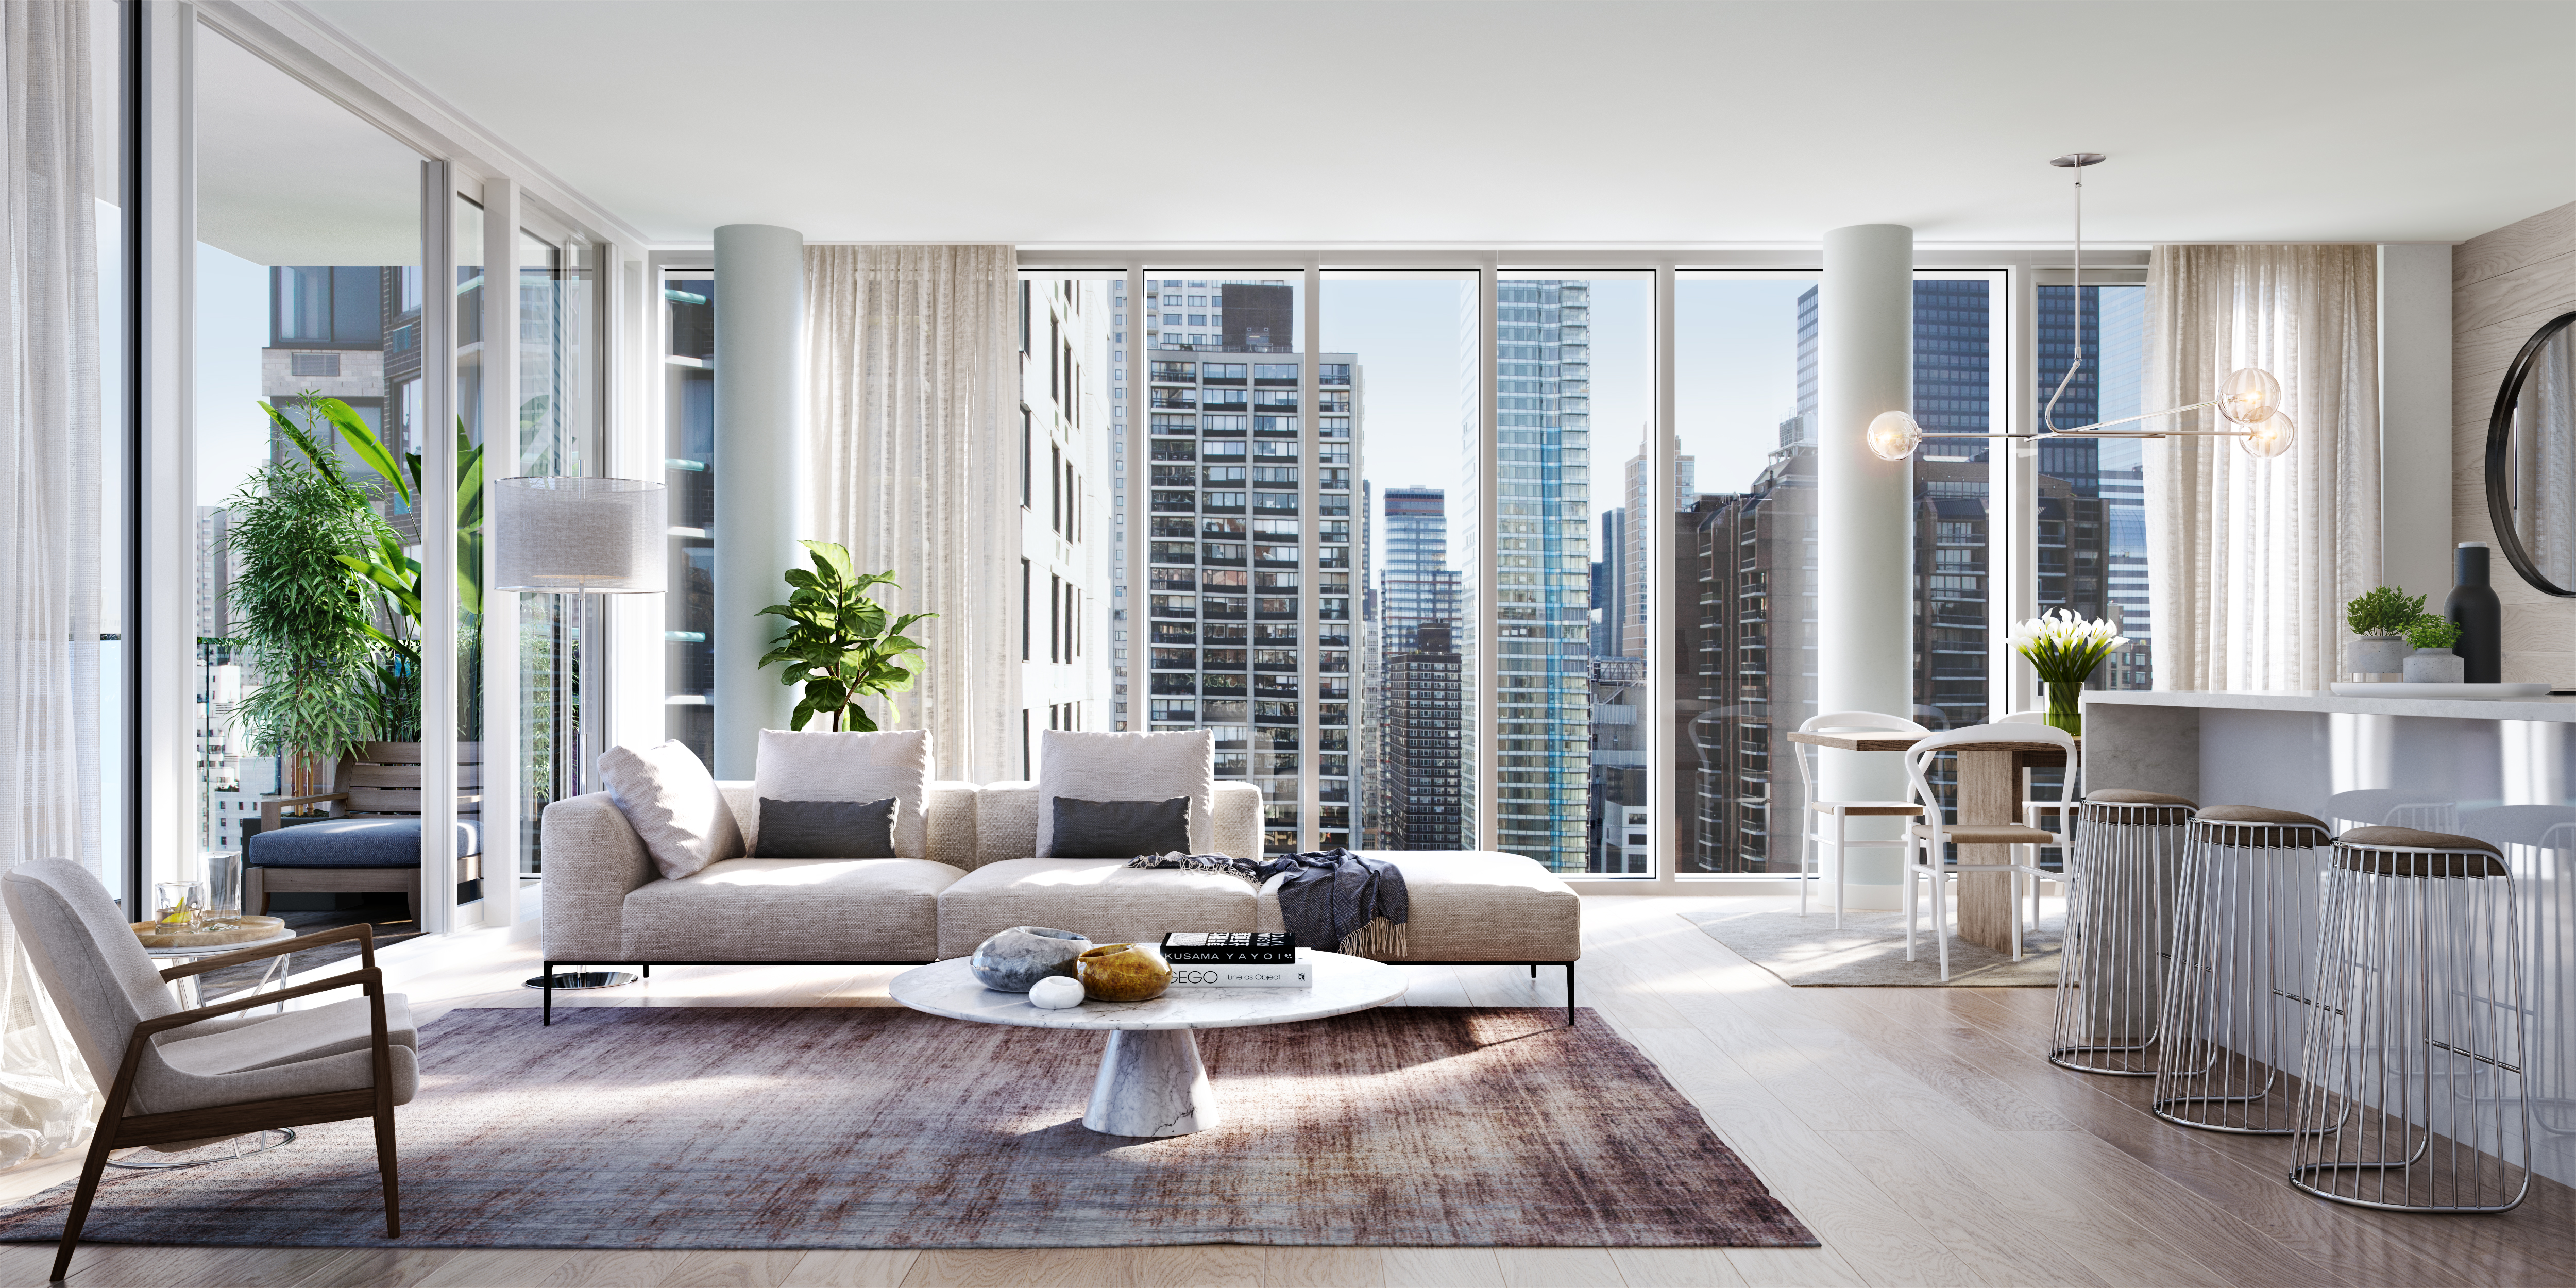 Address 12 East 88th Street S Begin This Month With Immediate Occupancy Pricing Will Start From 3 Million Developer Simon Baron